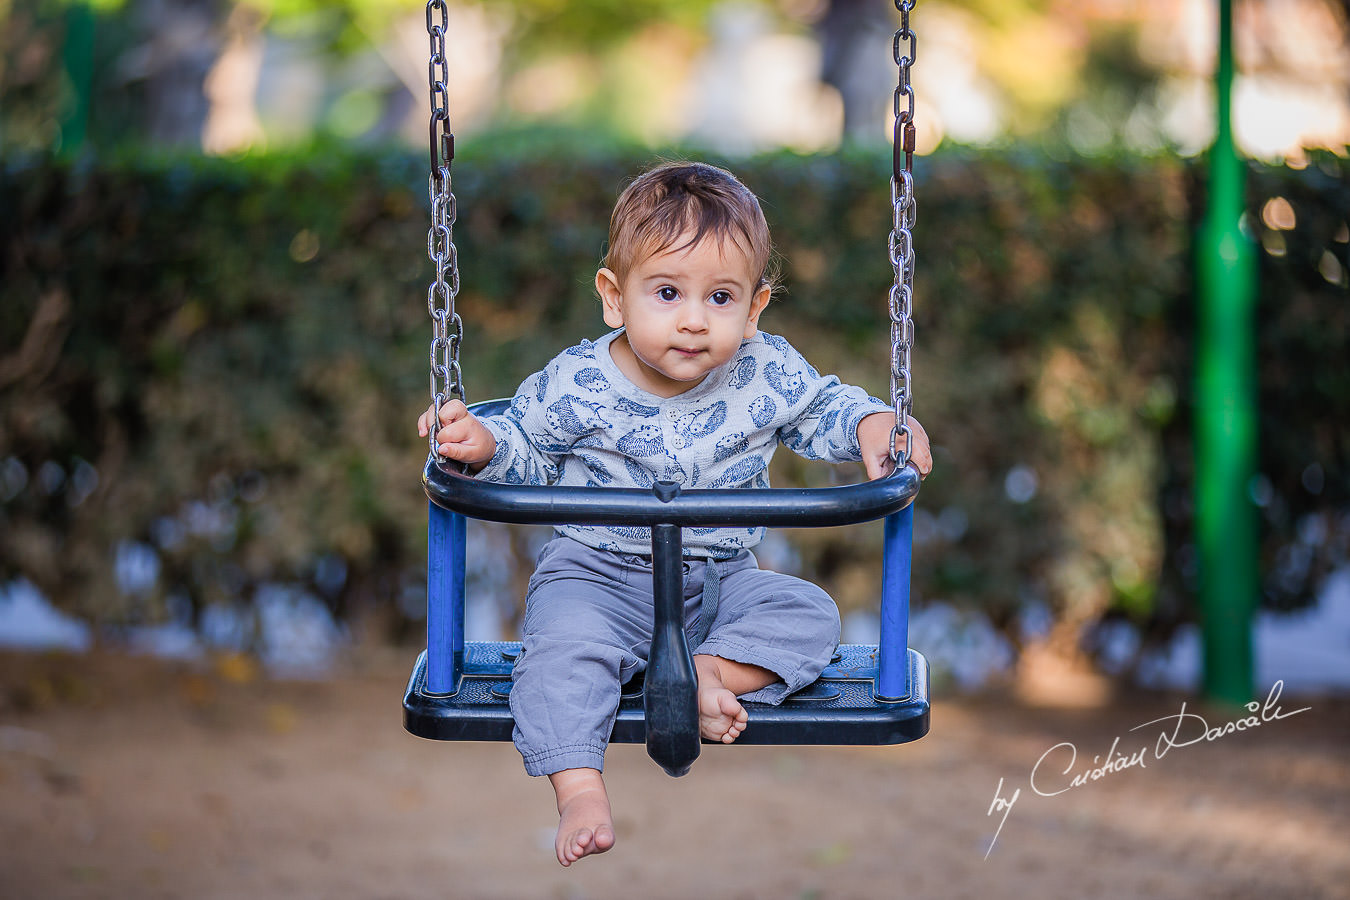 Smallest family member in swing, moments captured by Cristian Dascalu during a beautiful Limassol family photography photo session.